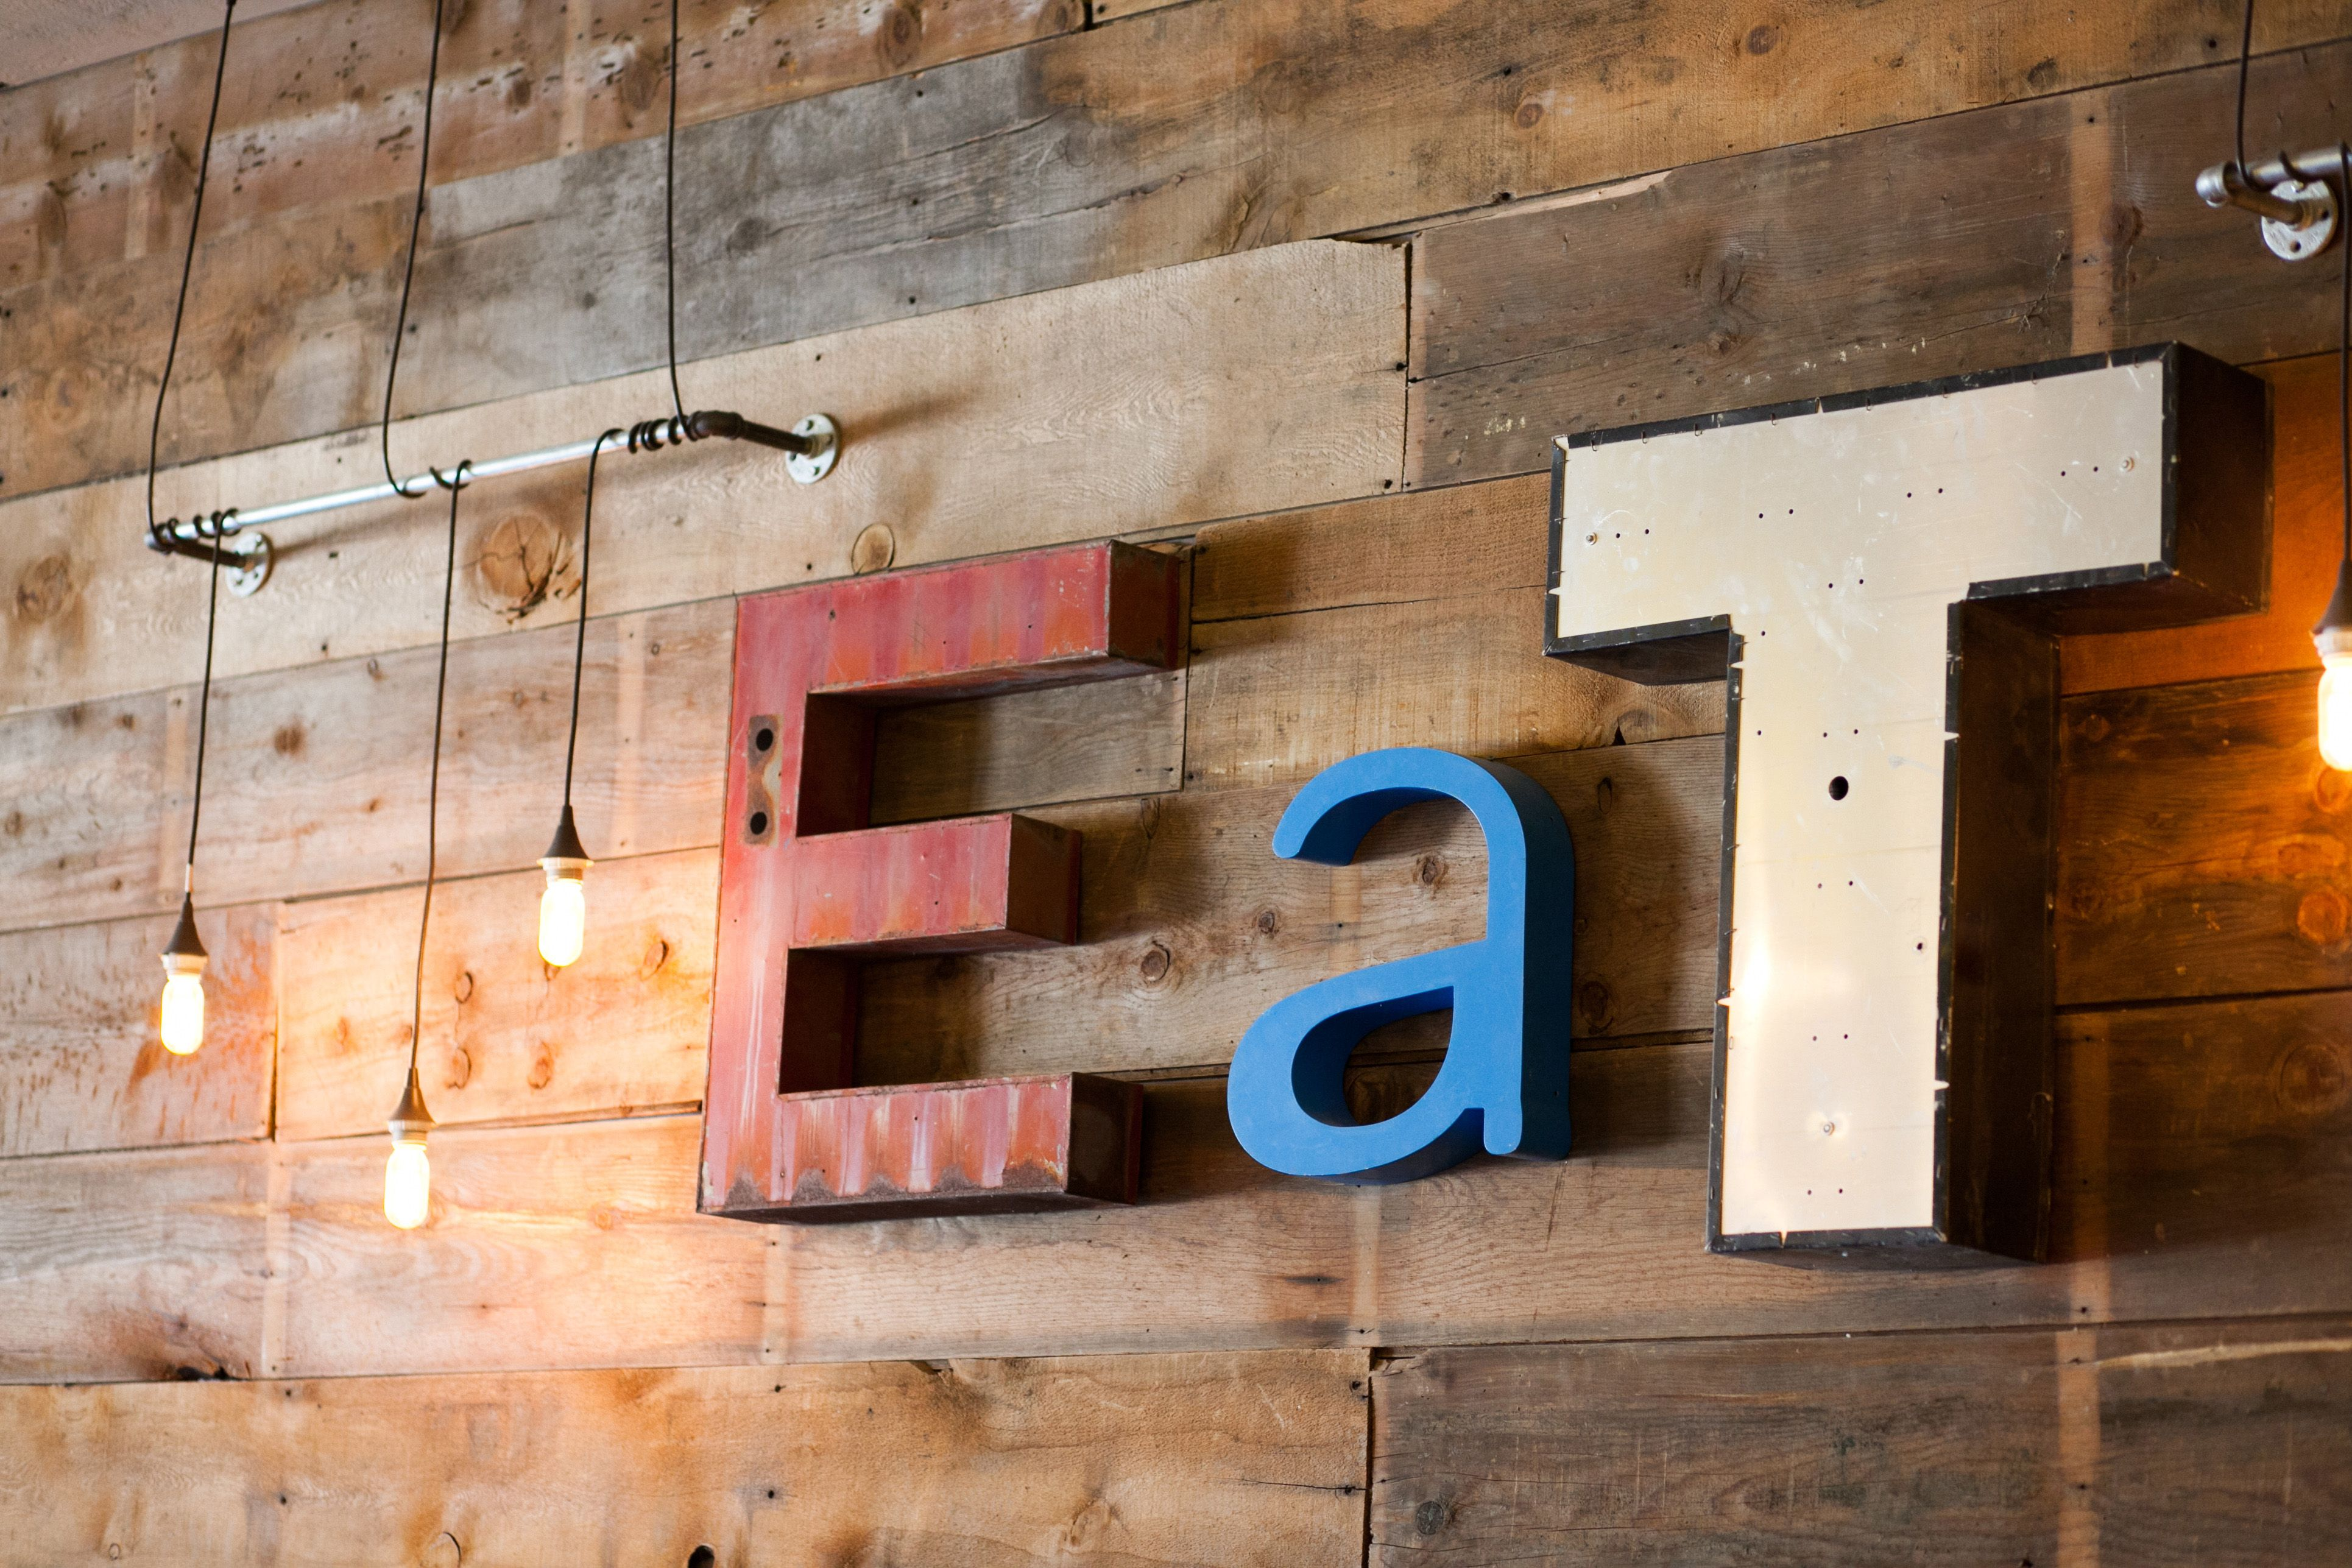 Reclaimed Channel Letter Eat Signage Mounted On Interior Wall To Reclaimed Barn Wood With